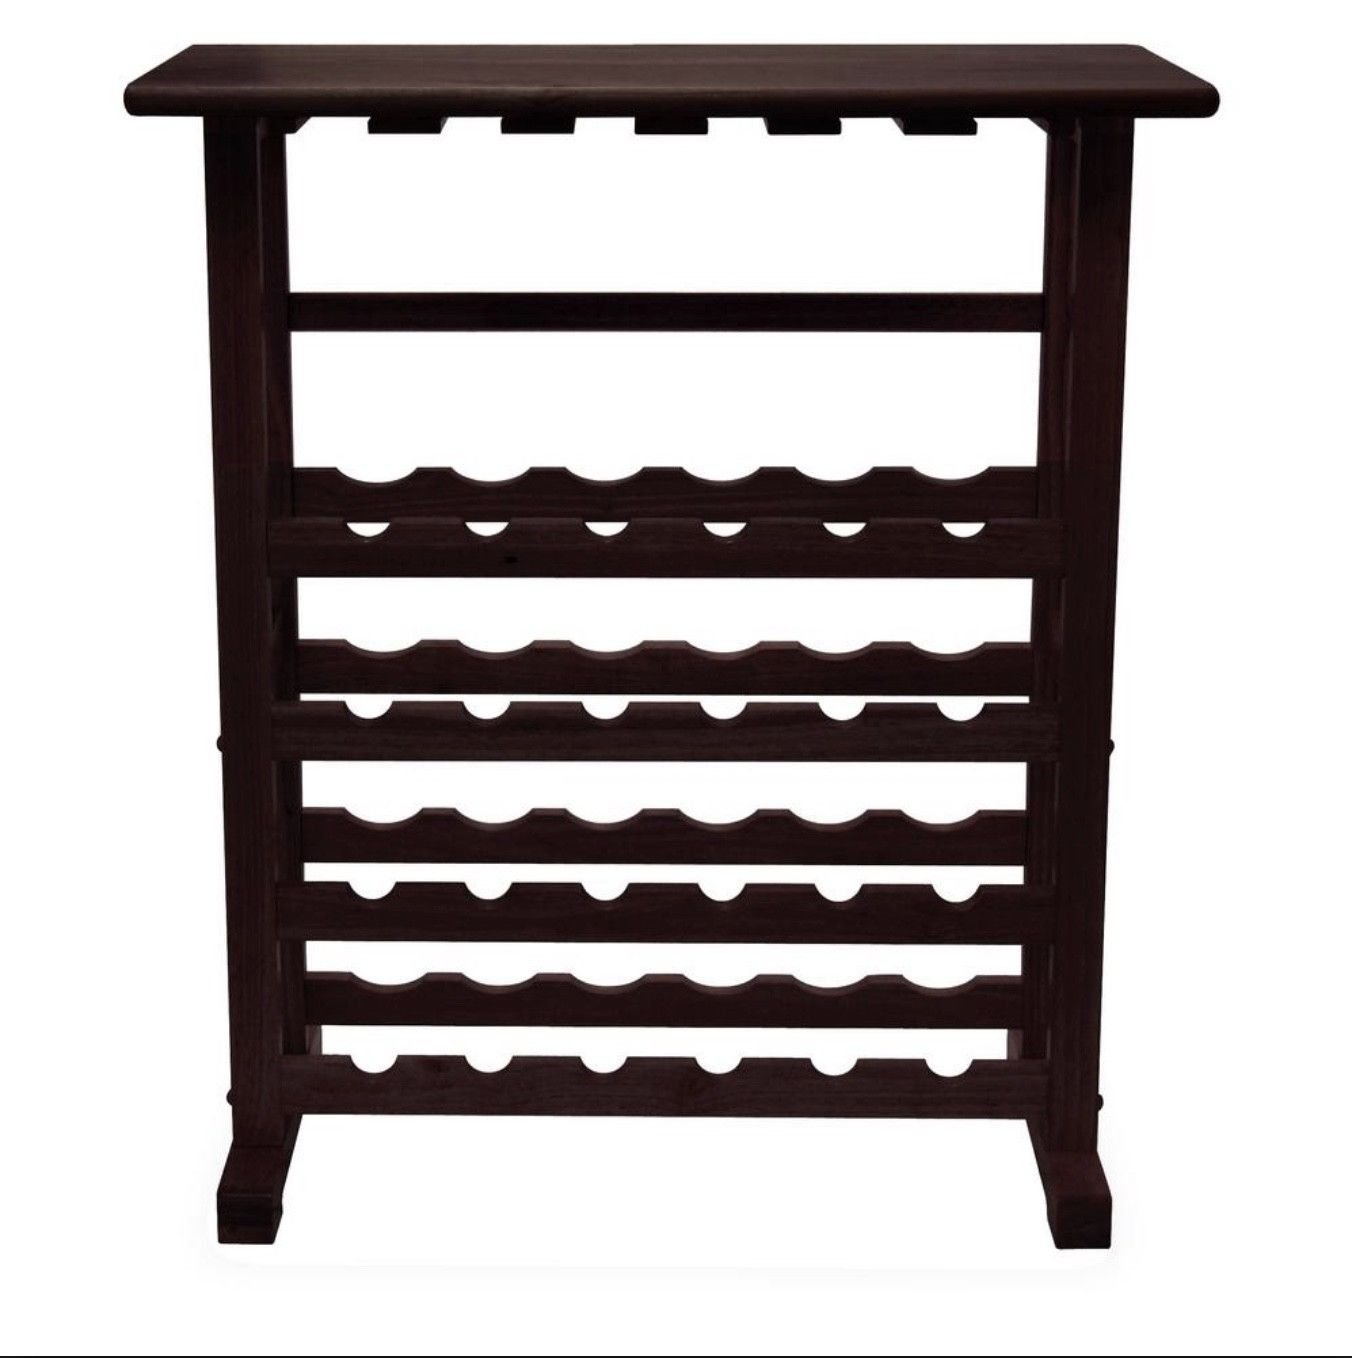 Wood Wine Rack 24 Bottle Glass Hanger Espresso Holder Storage Shelf Display by RX-789 (Image #3)